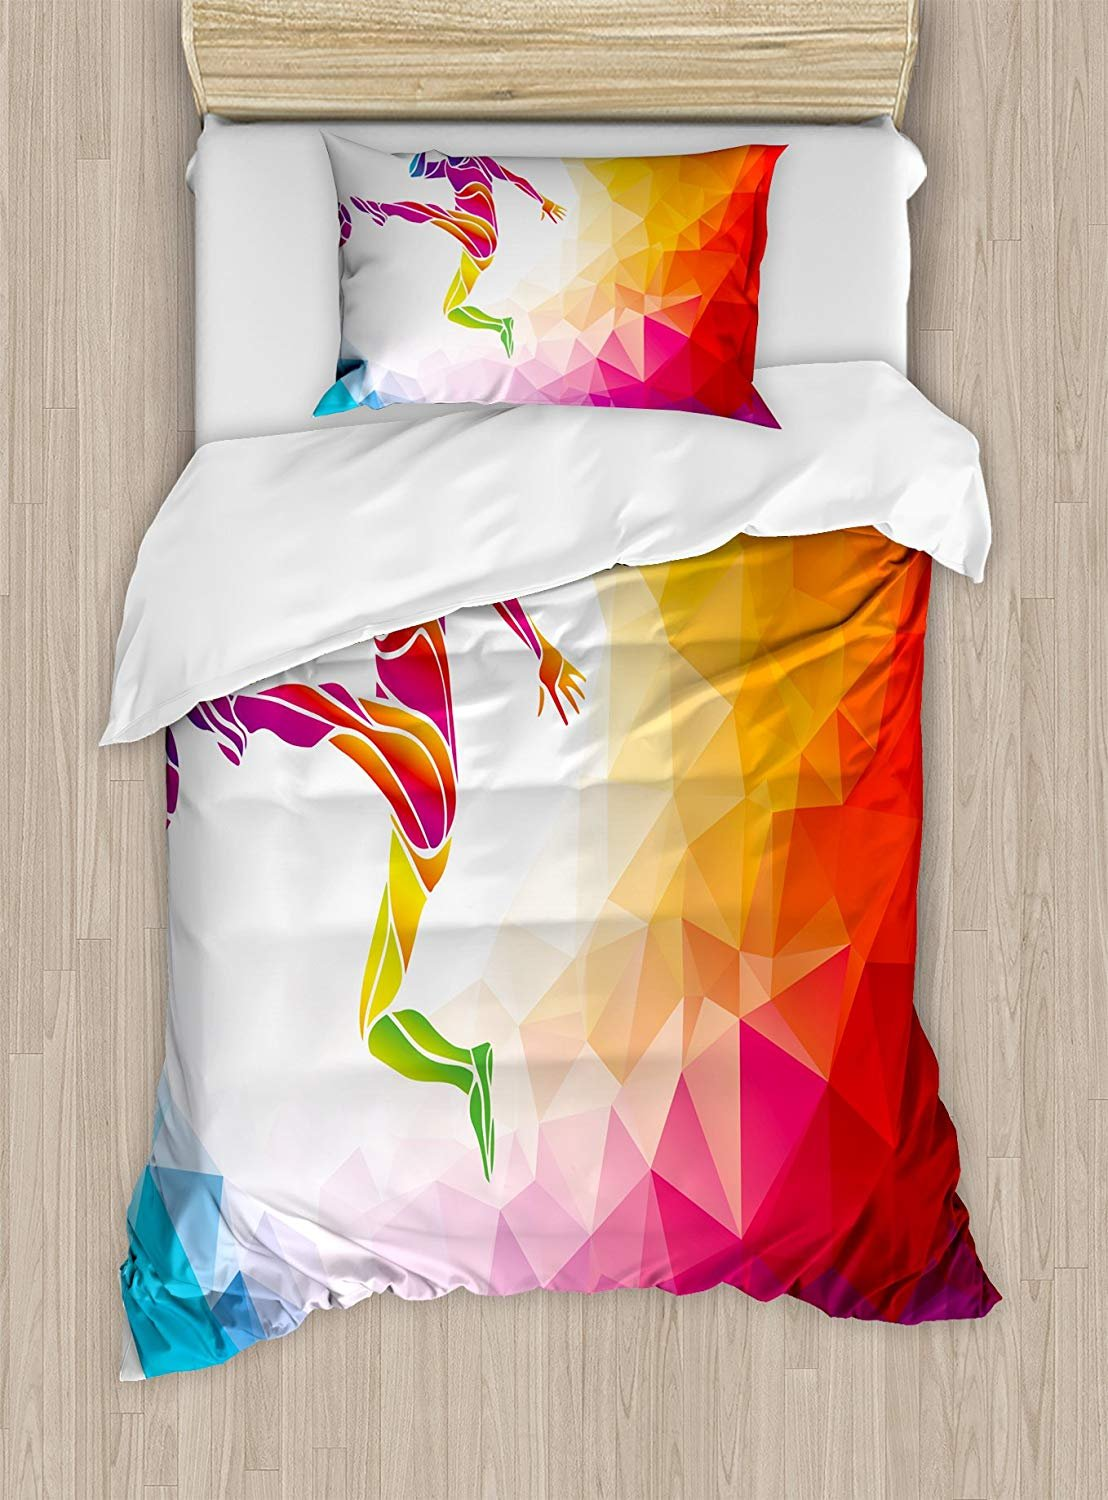 Teen Room Duvet Cover Set,Fractal Soccer Player Hitting the Ball Polygonal Abstract Artful Illustration,Cosy House Collection 4 Piece Bedding Sets